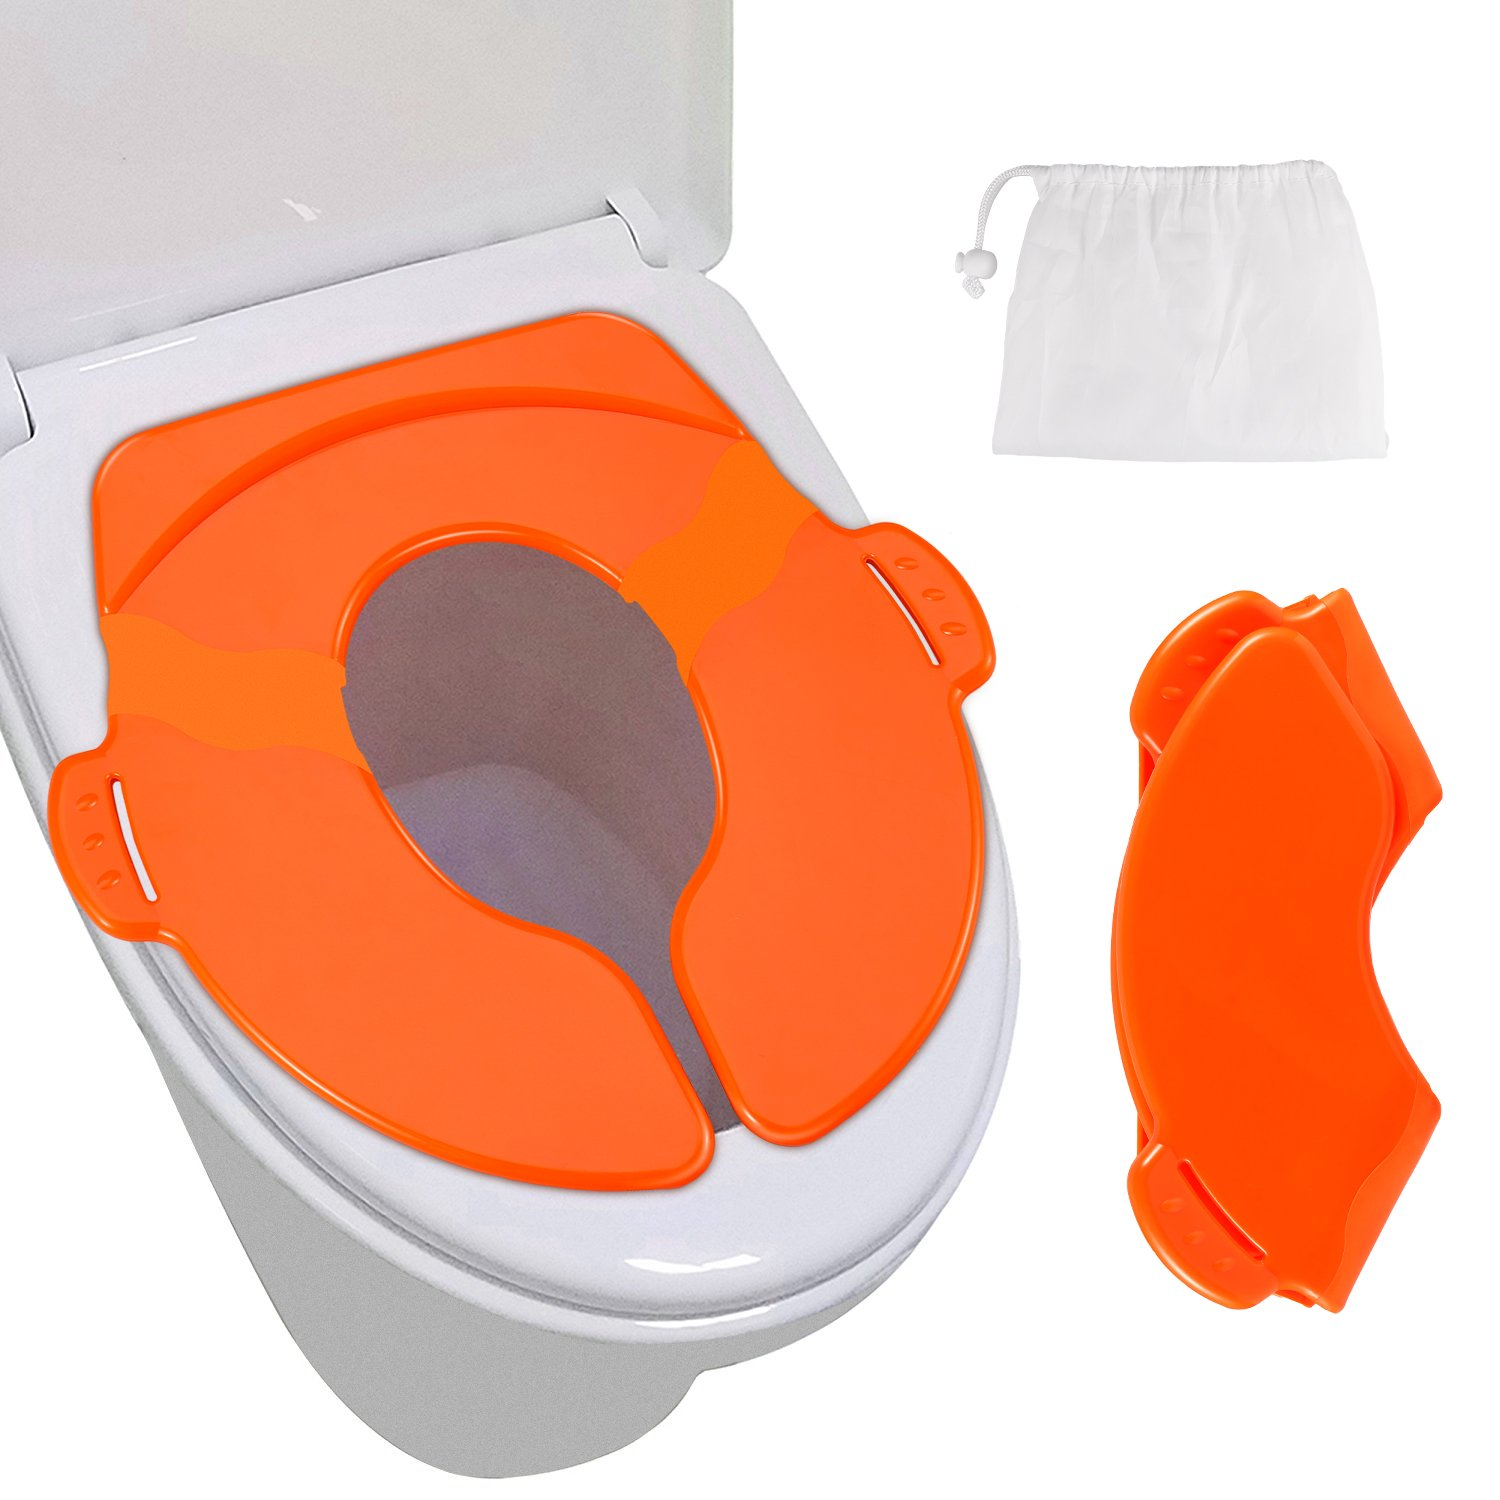 Potty Training seat, Cakie Portable Folding Reusable Travel Potty Training Seat Covers with Carry Bag for Toddlers and Kids, Boys and Girls(Orange)